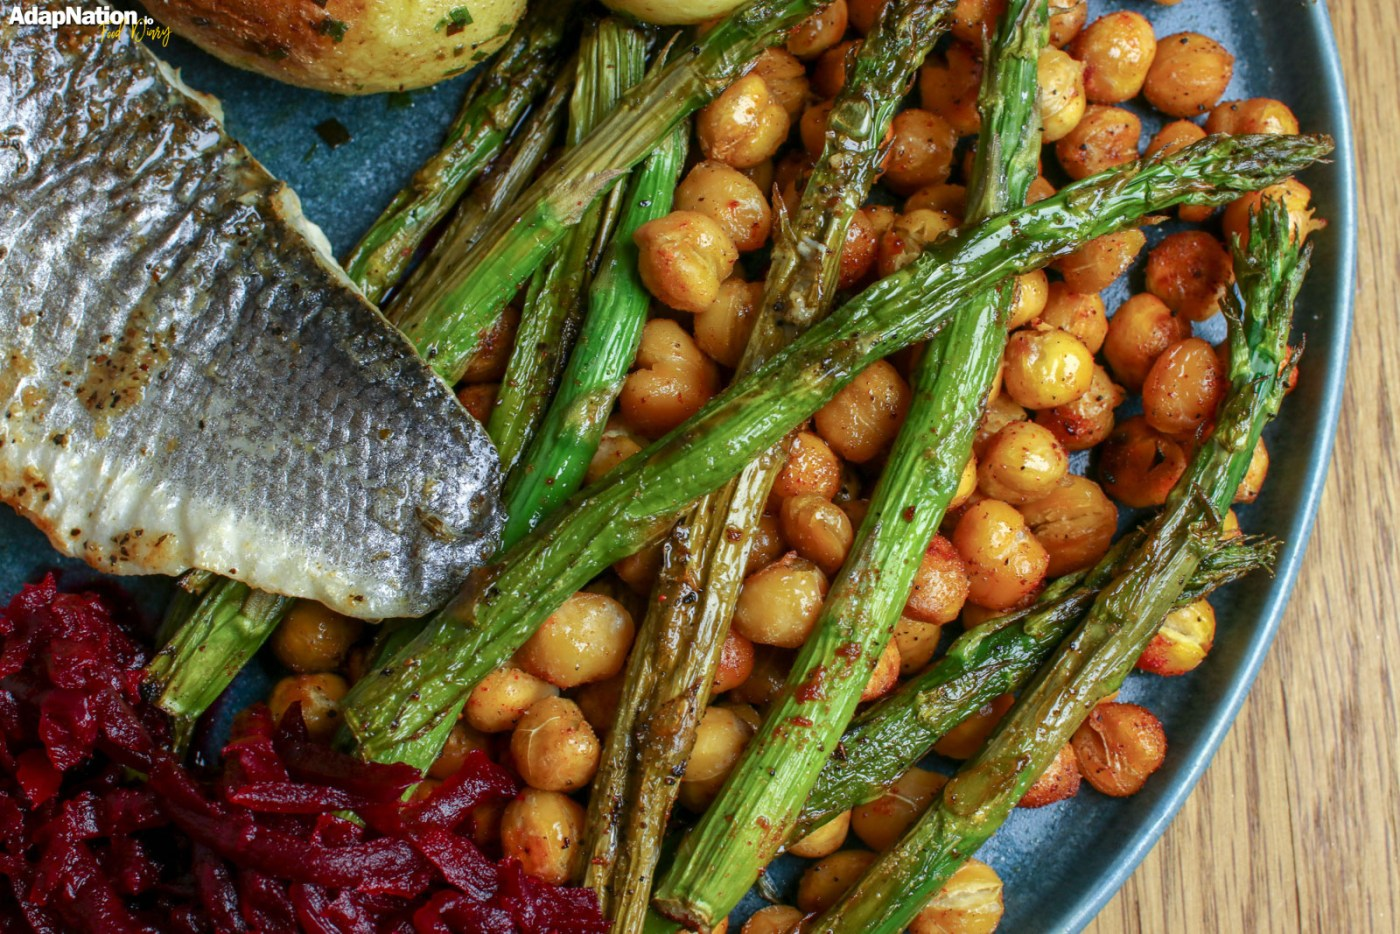 Pan Fried Sea Bass, with Roasted Chickpeas & Asparagus, Smoky Beetroot & Baby Potatoes